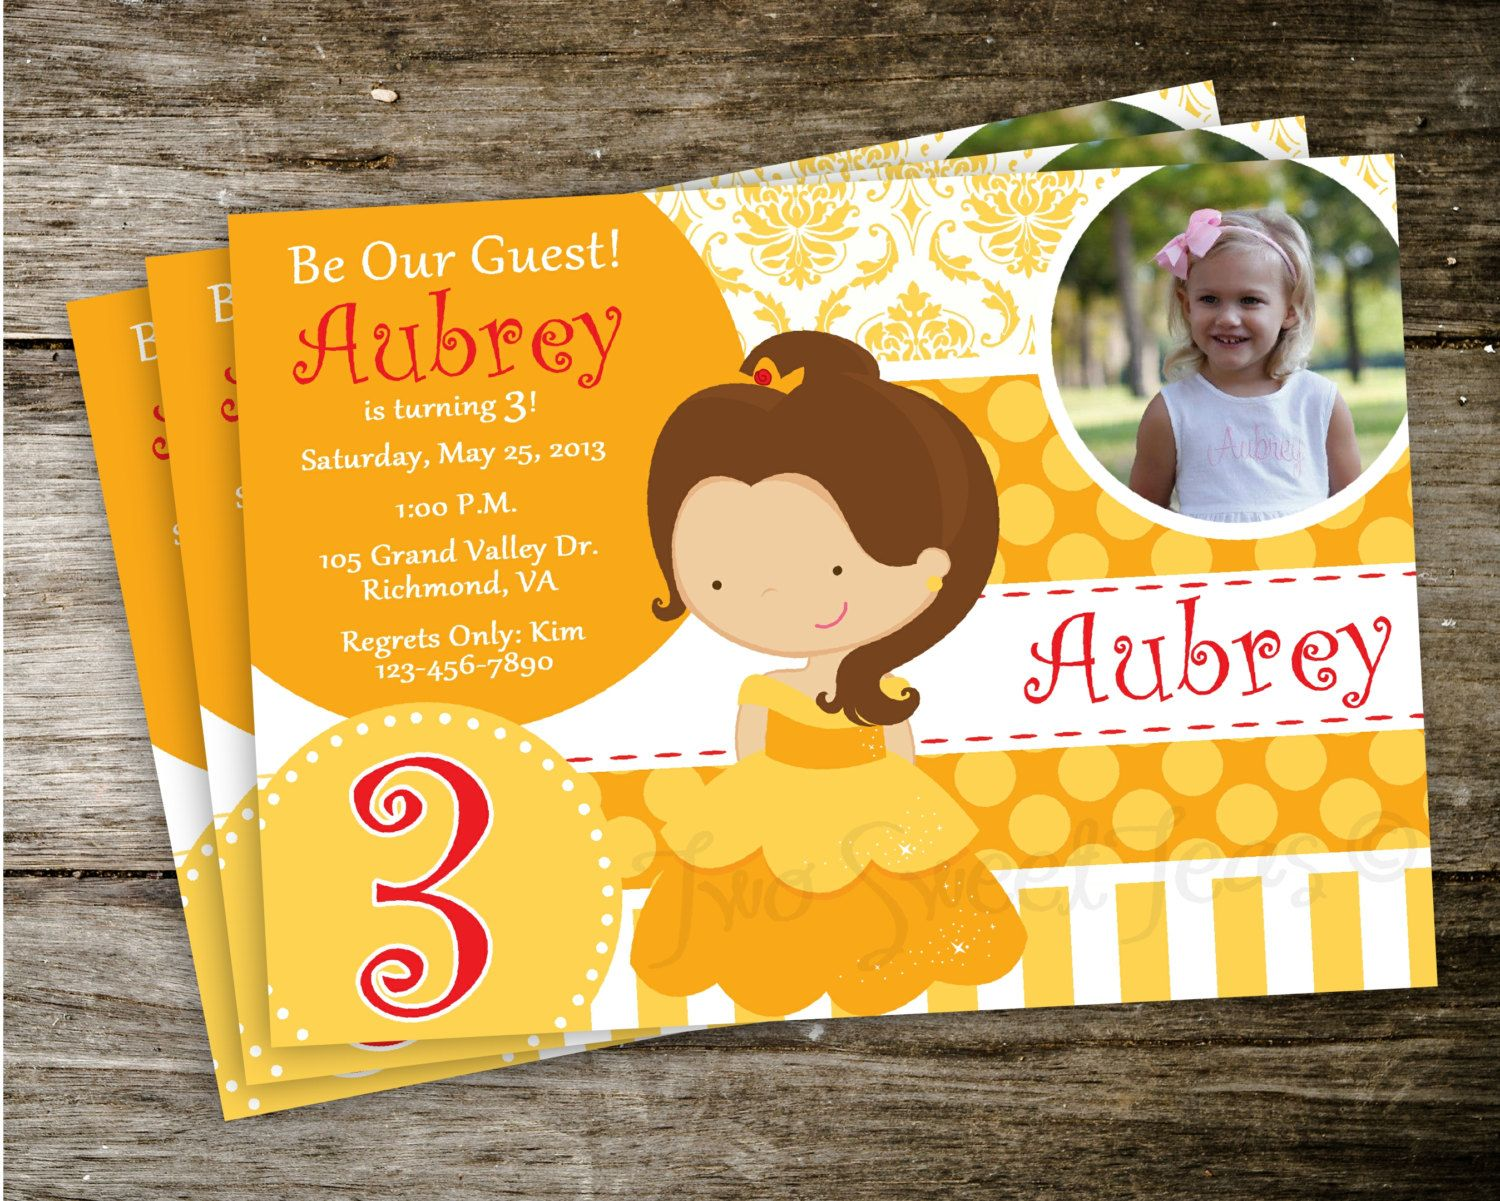 birthday party invitations printable%0A Belle Bell Beauty and the Beast Disney Princess Photo Birthday Party  Invitation Digital Printable